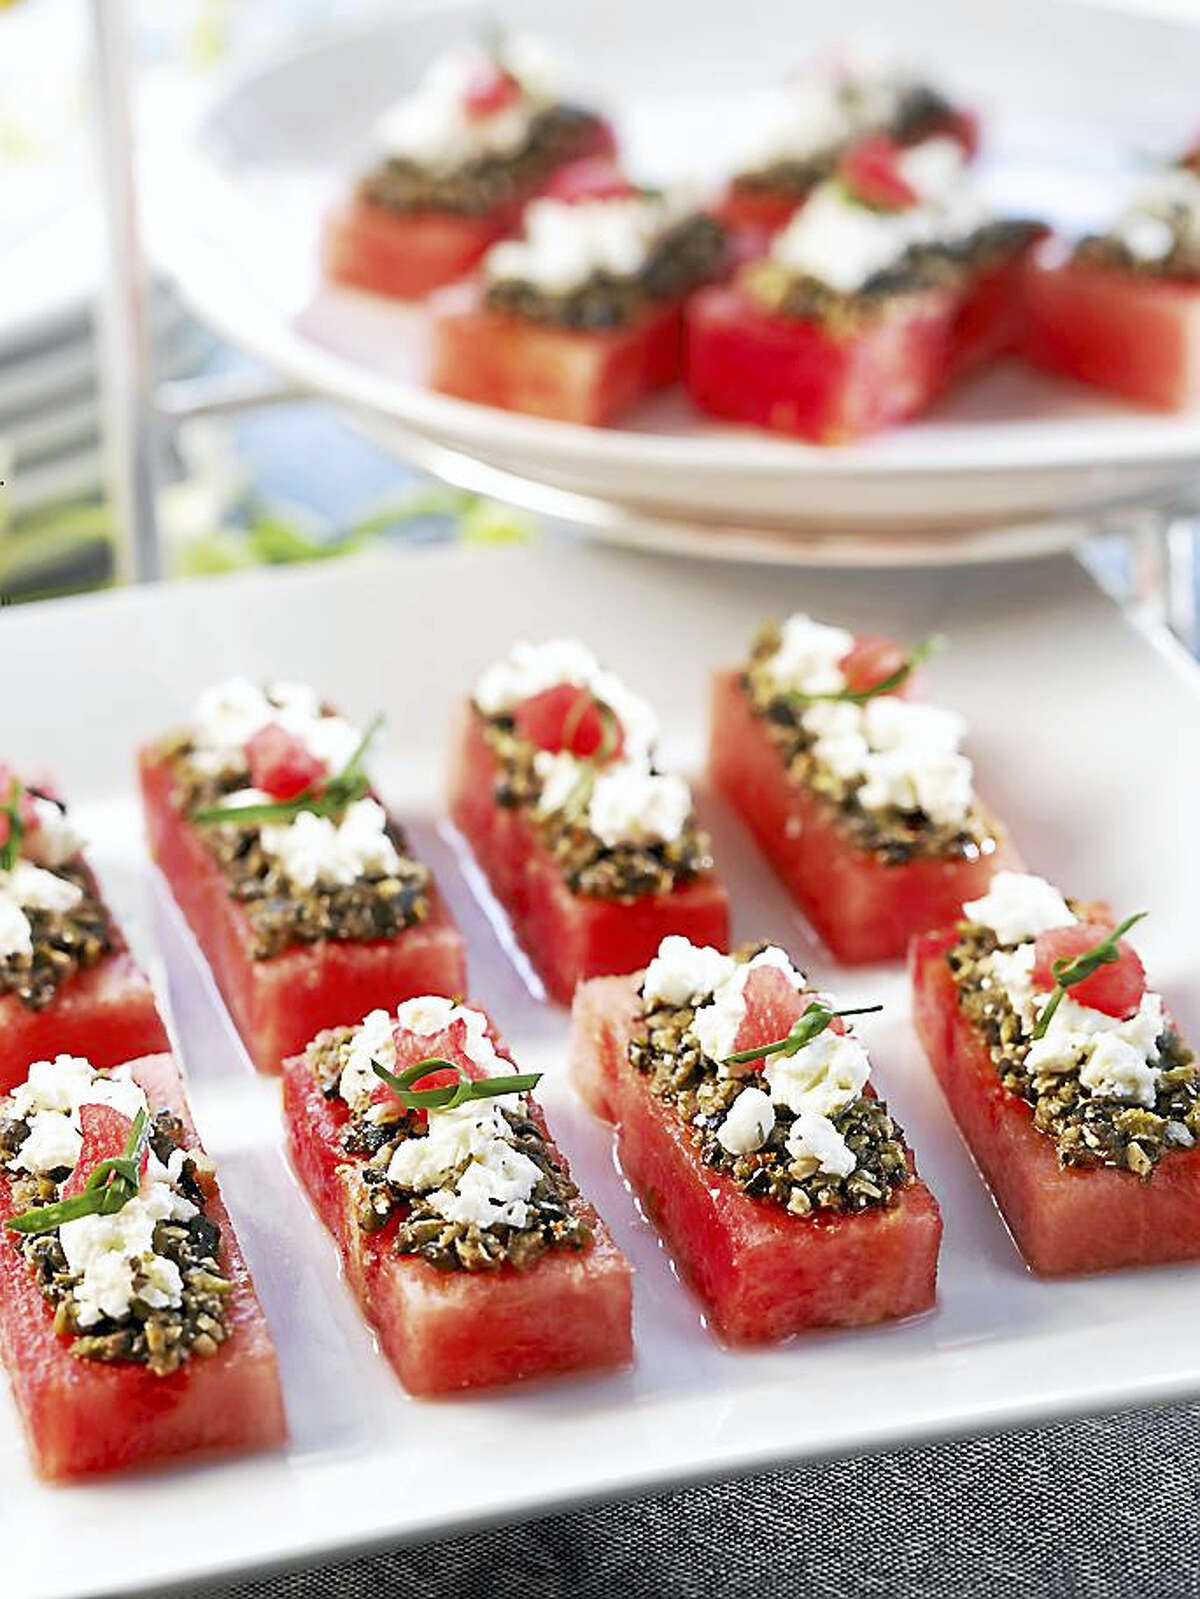 Who needs bread with this quick and easy watermelon canapés appetizer that can be made hours ahead of your party?